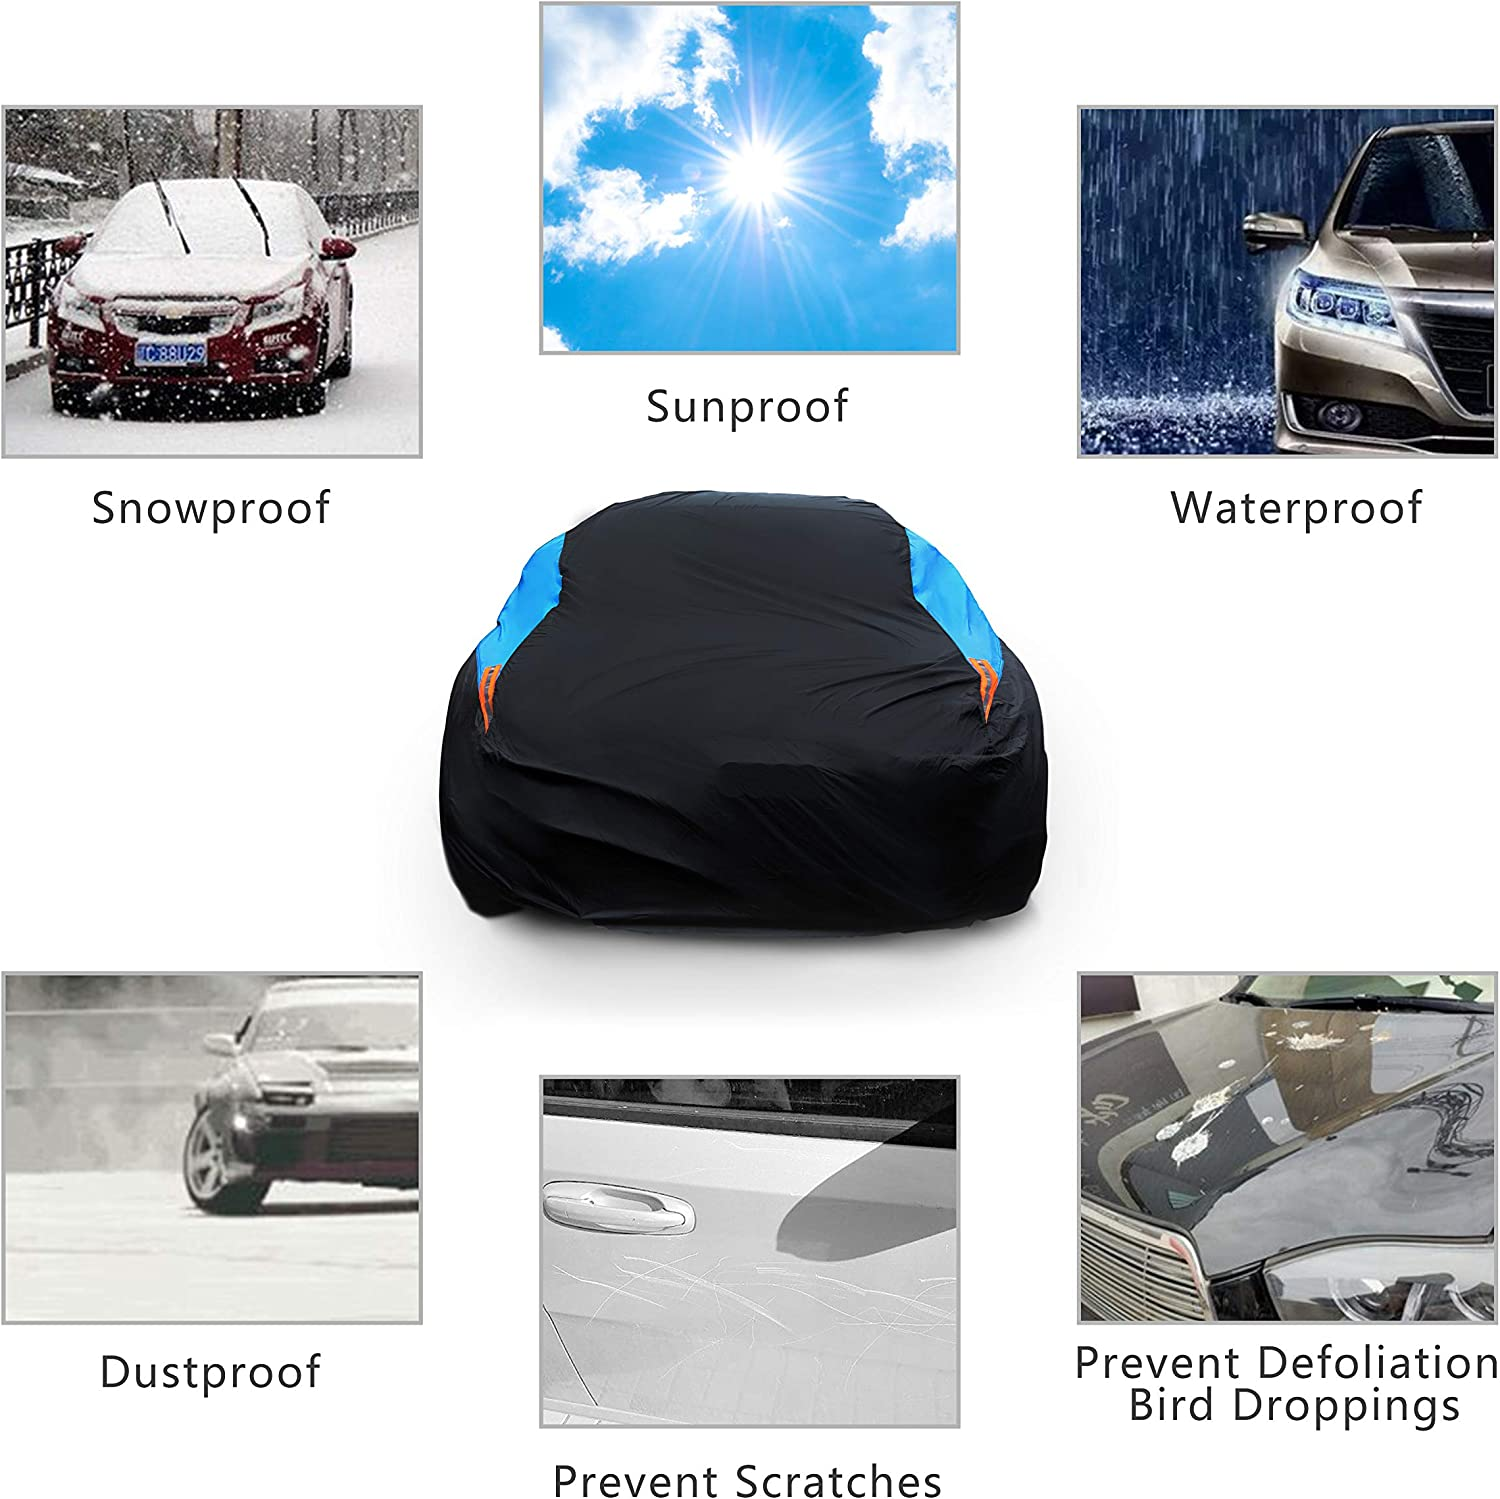 Fit Sedan Length 186-193 inch MORNYRAY Waterproof Car Cover All Weather Snowproof UV Protection Windproof Outdoor Full car Cover Universal Fit for Sedan